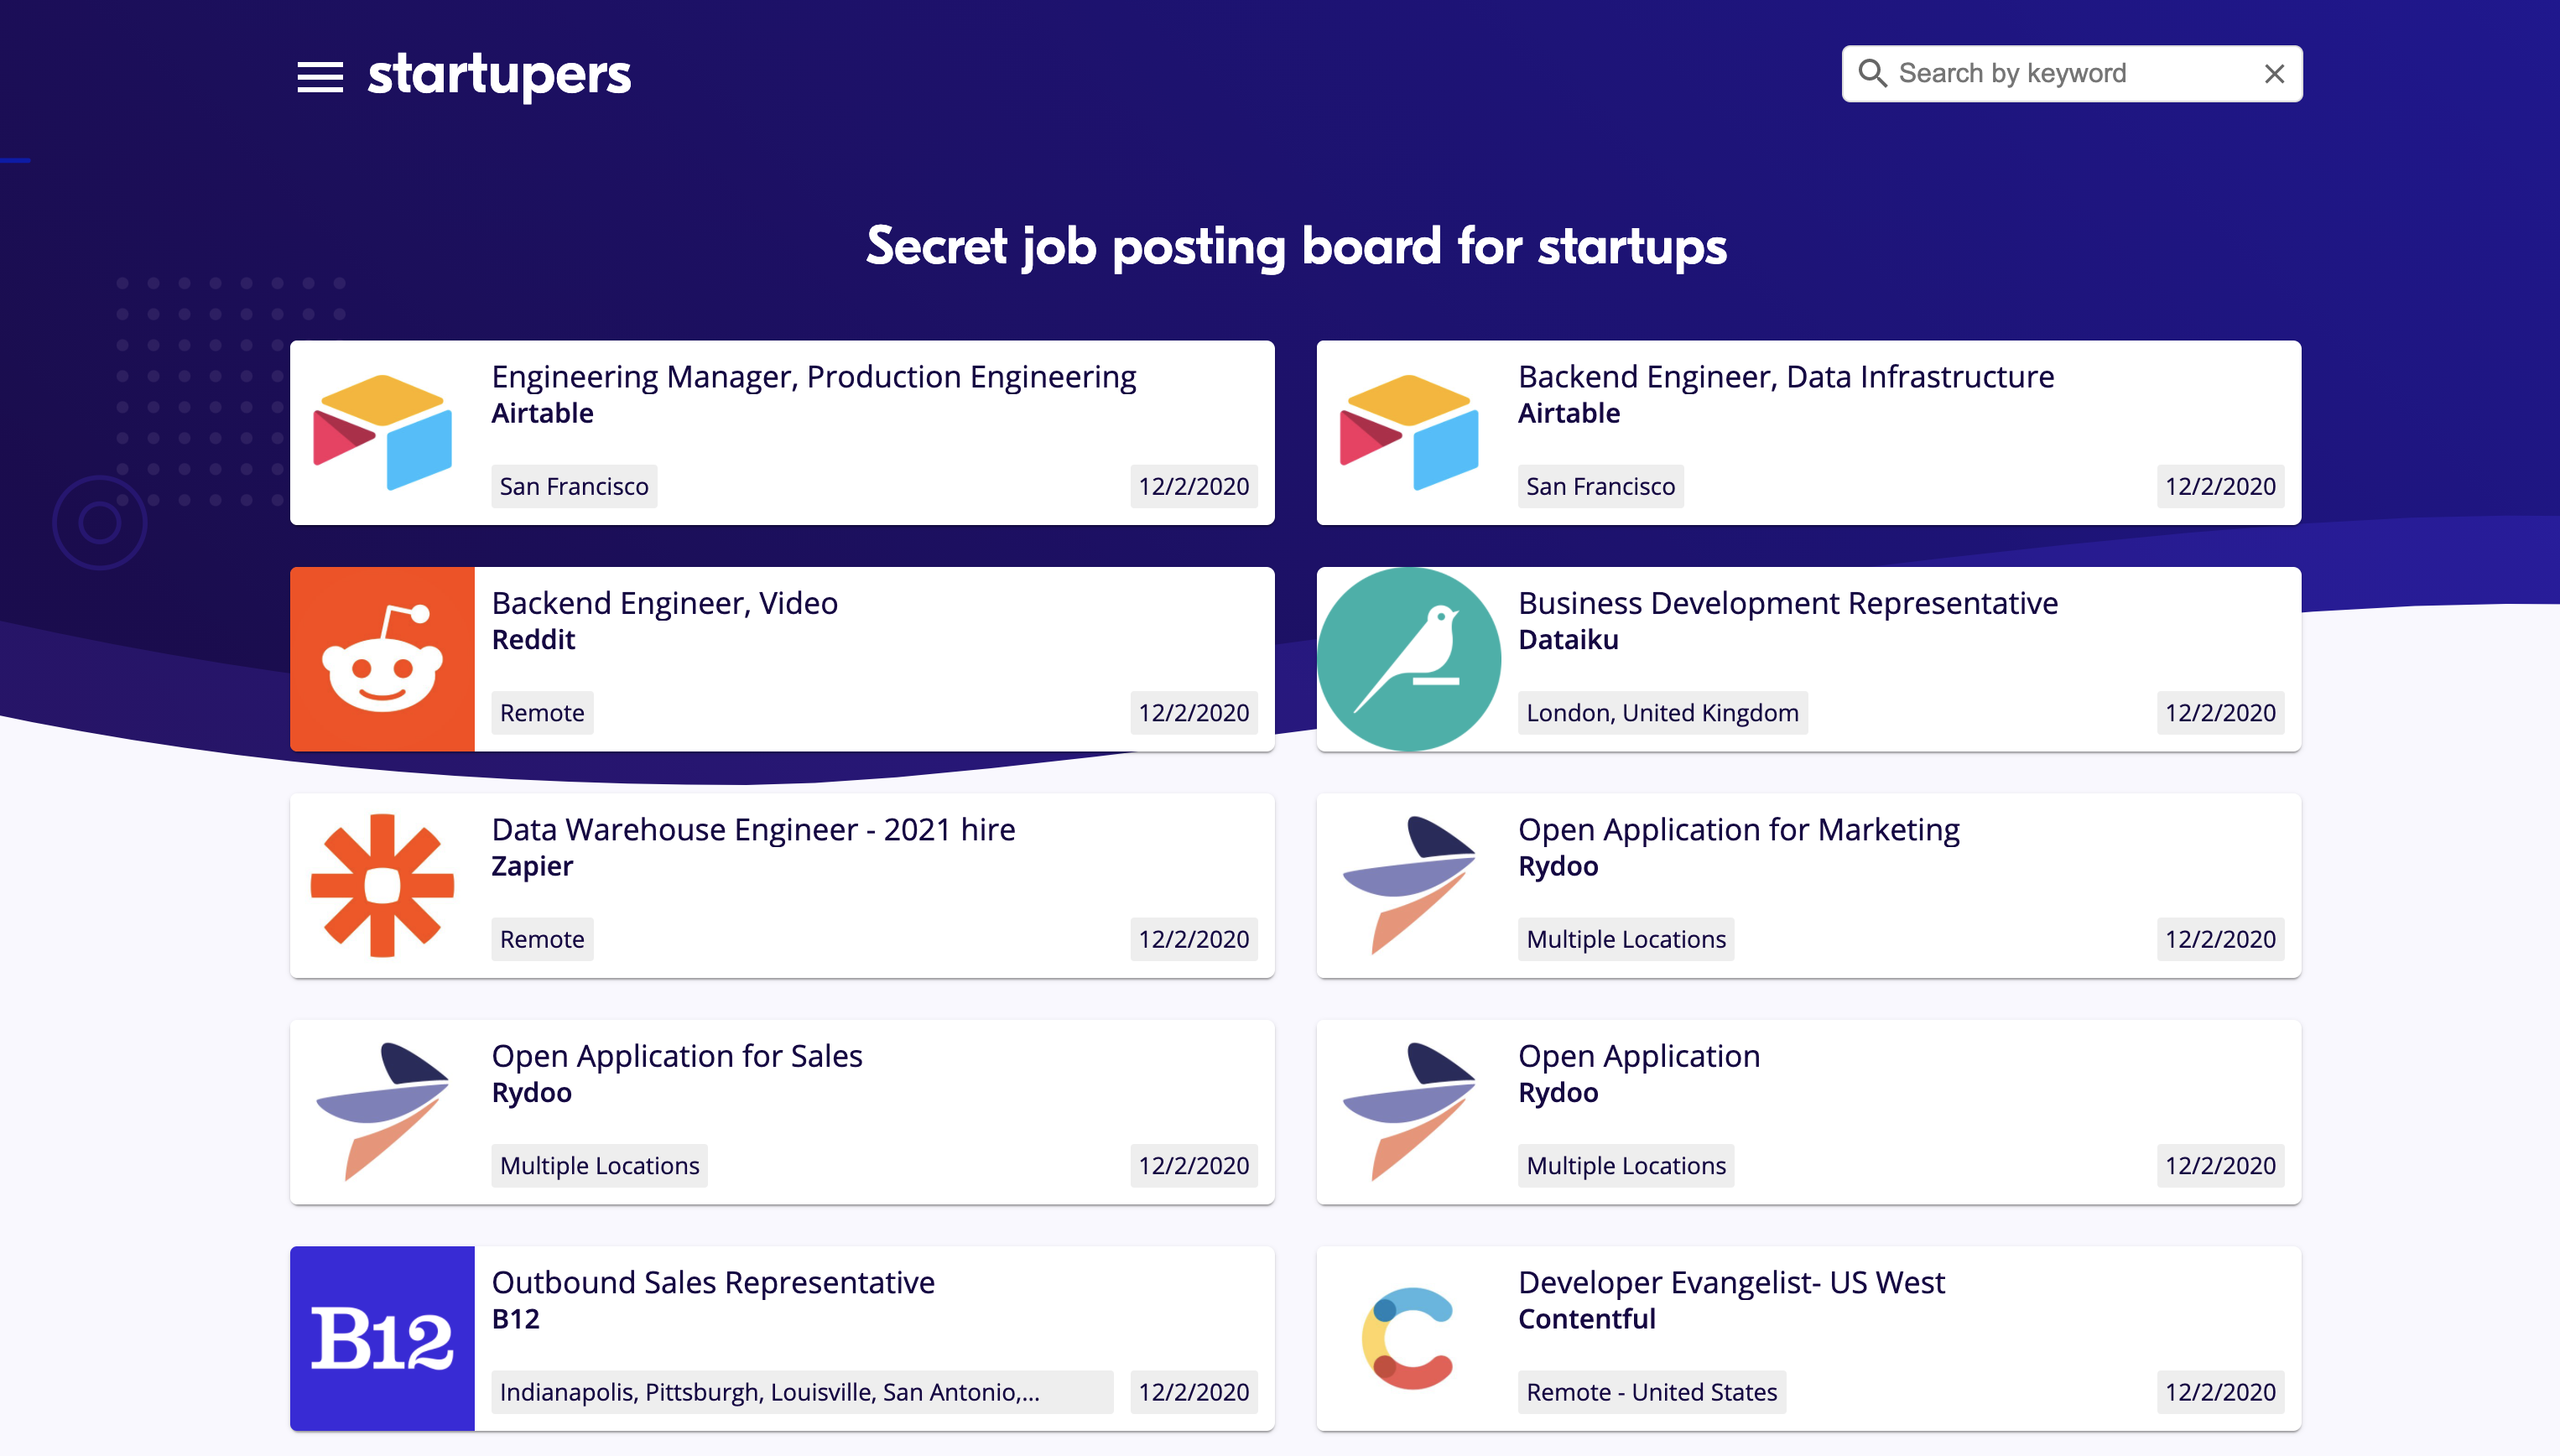 Startupers homepage